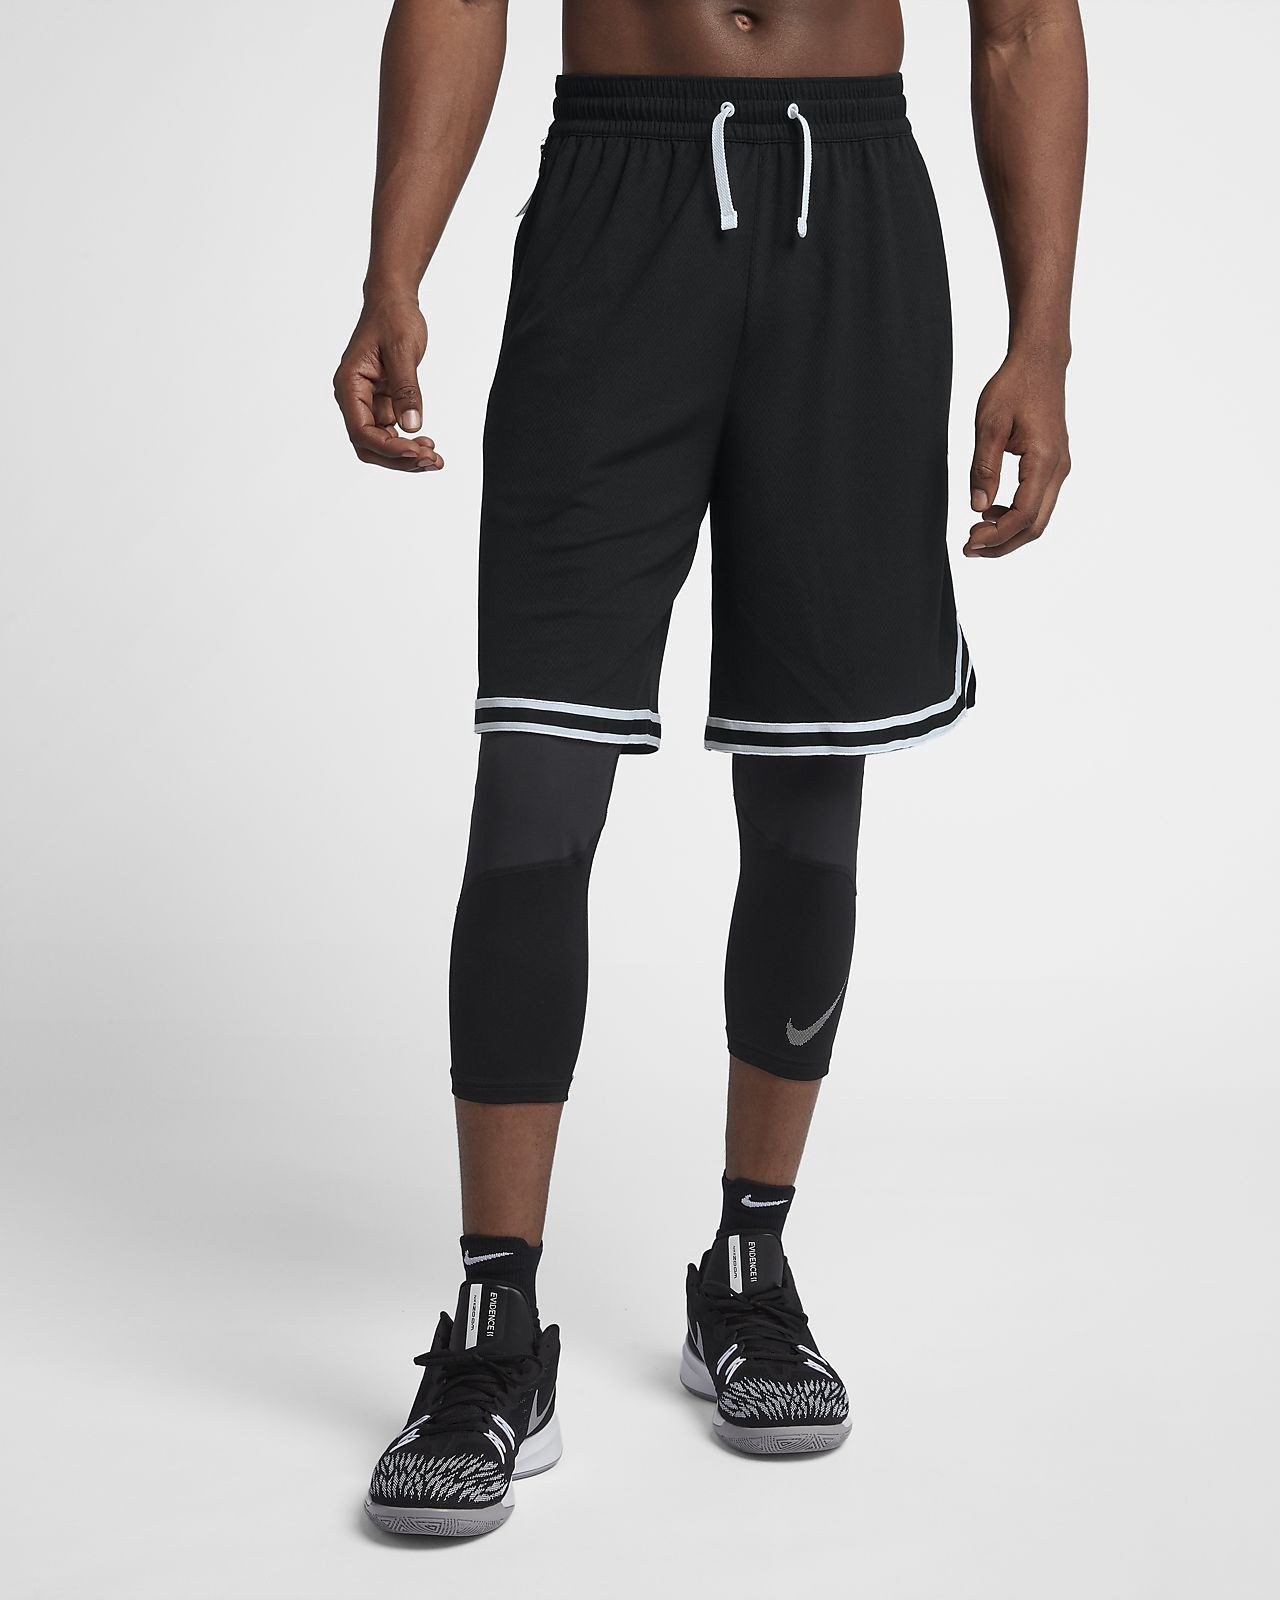 de7c65e5bdc6 Nike Dri-Fit Dna Men s Basketball Shorts - S